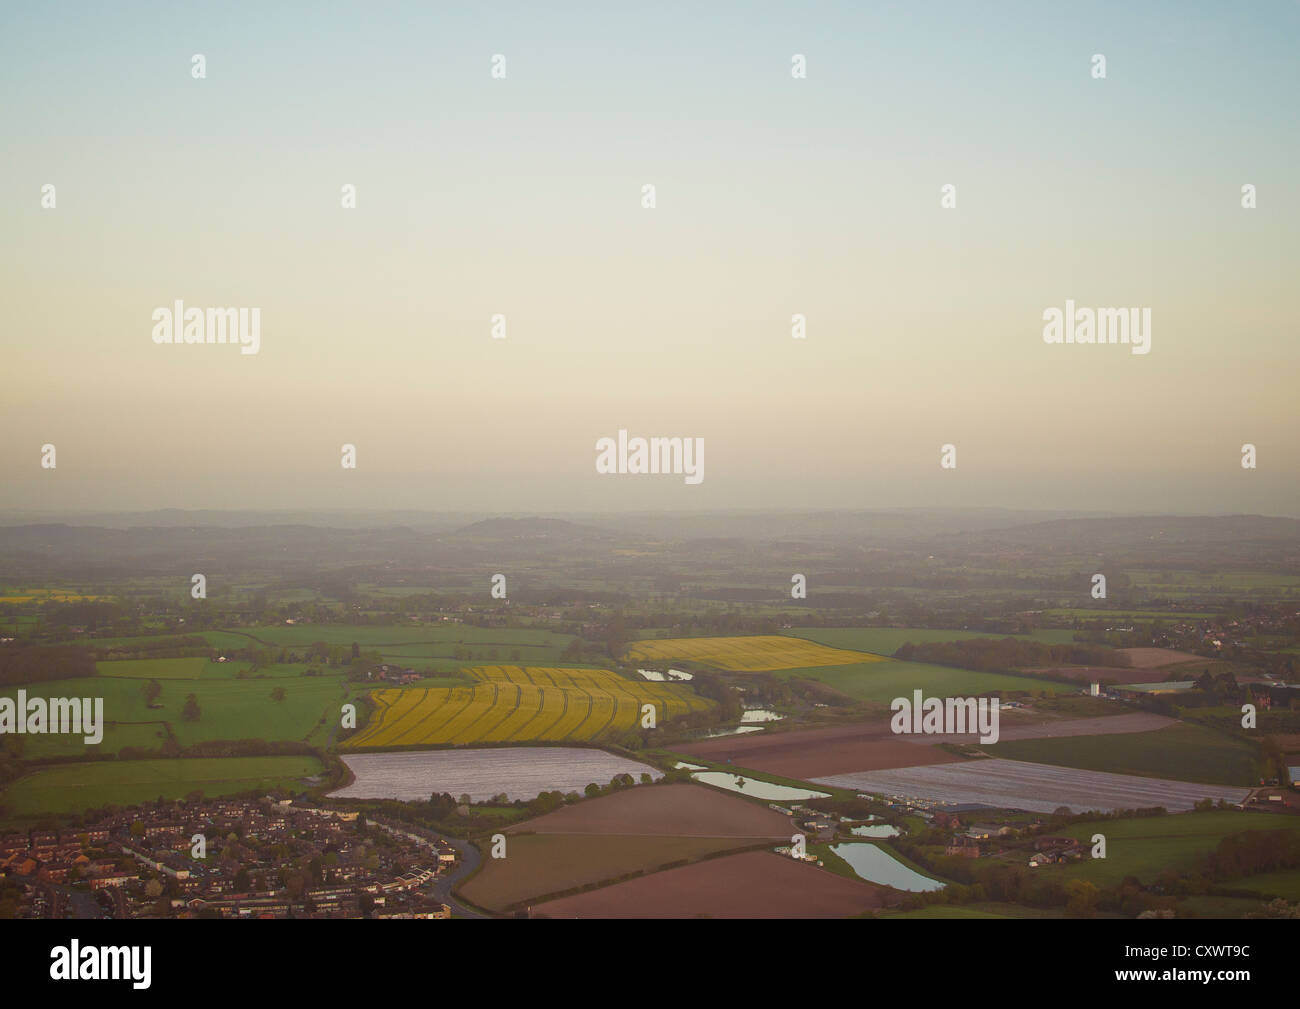 Aerial view of city and rural suburbs - Stock Image